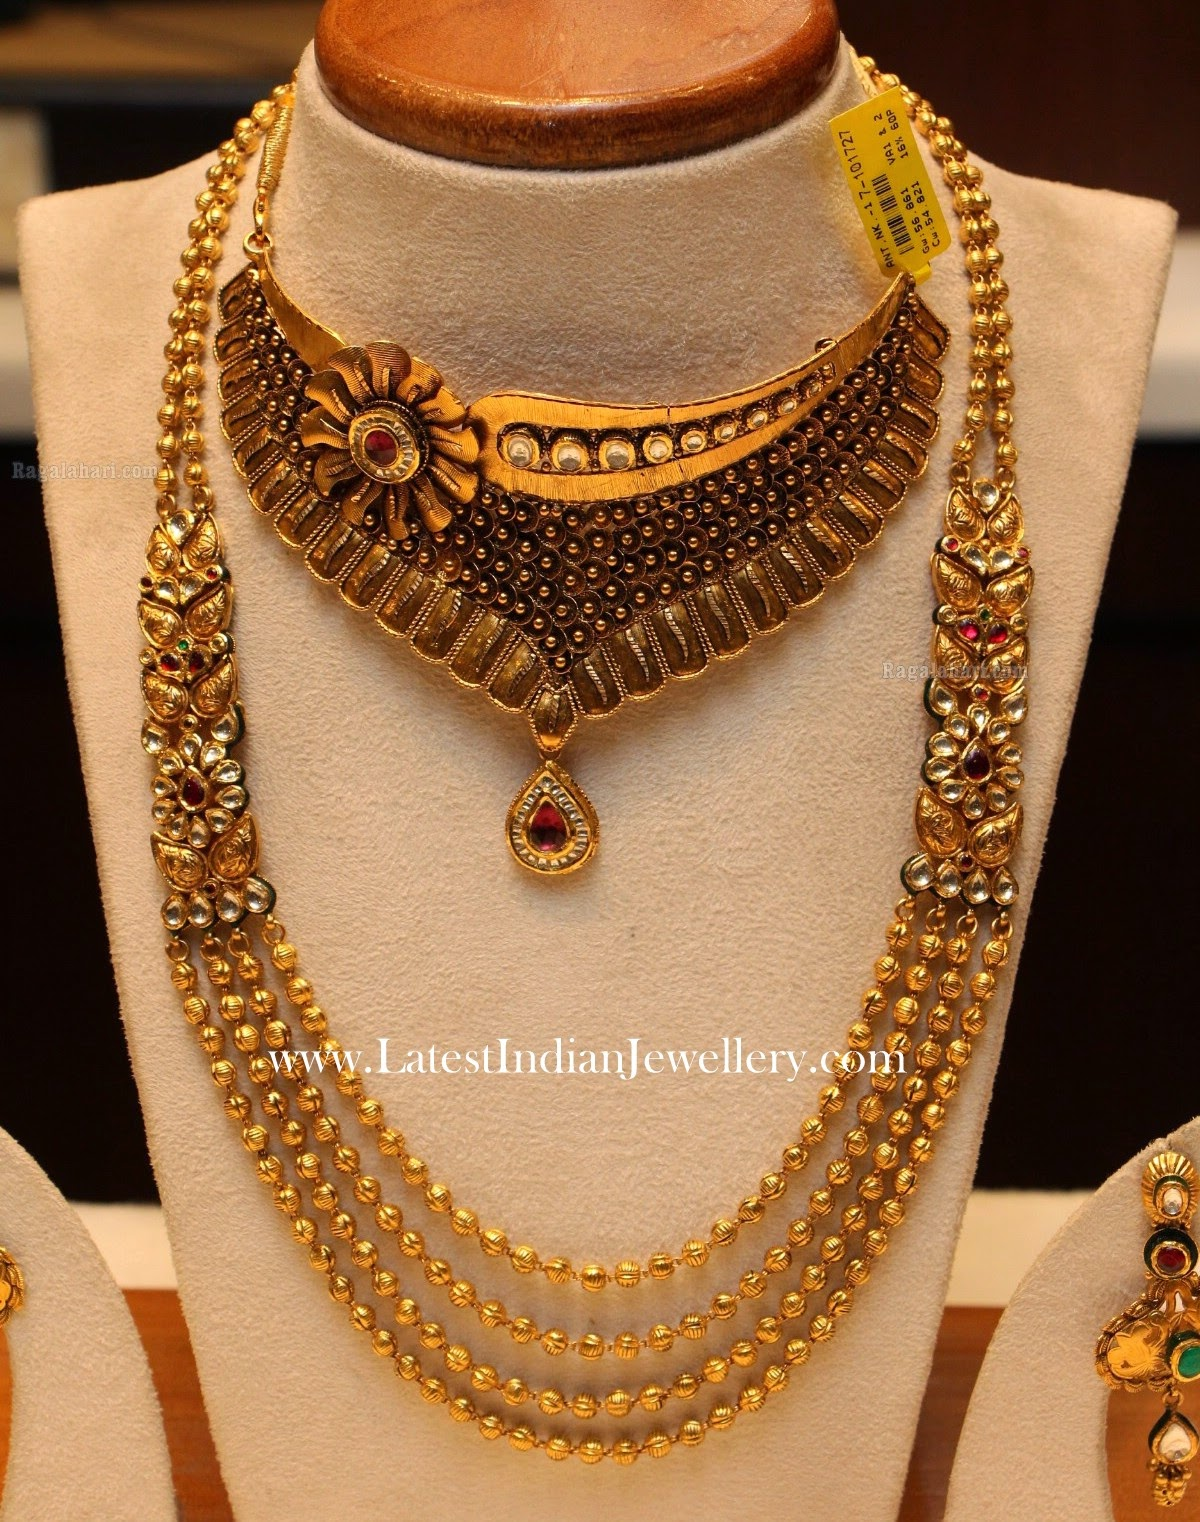 Trendy Choker and Gold Beads Mala